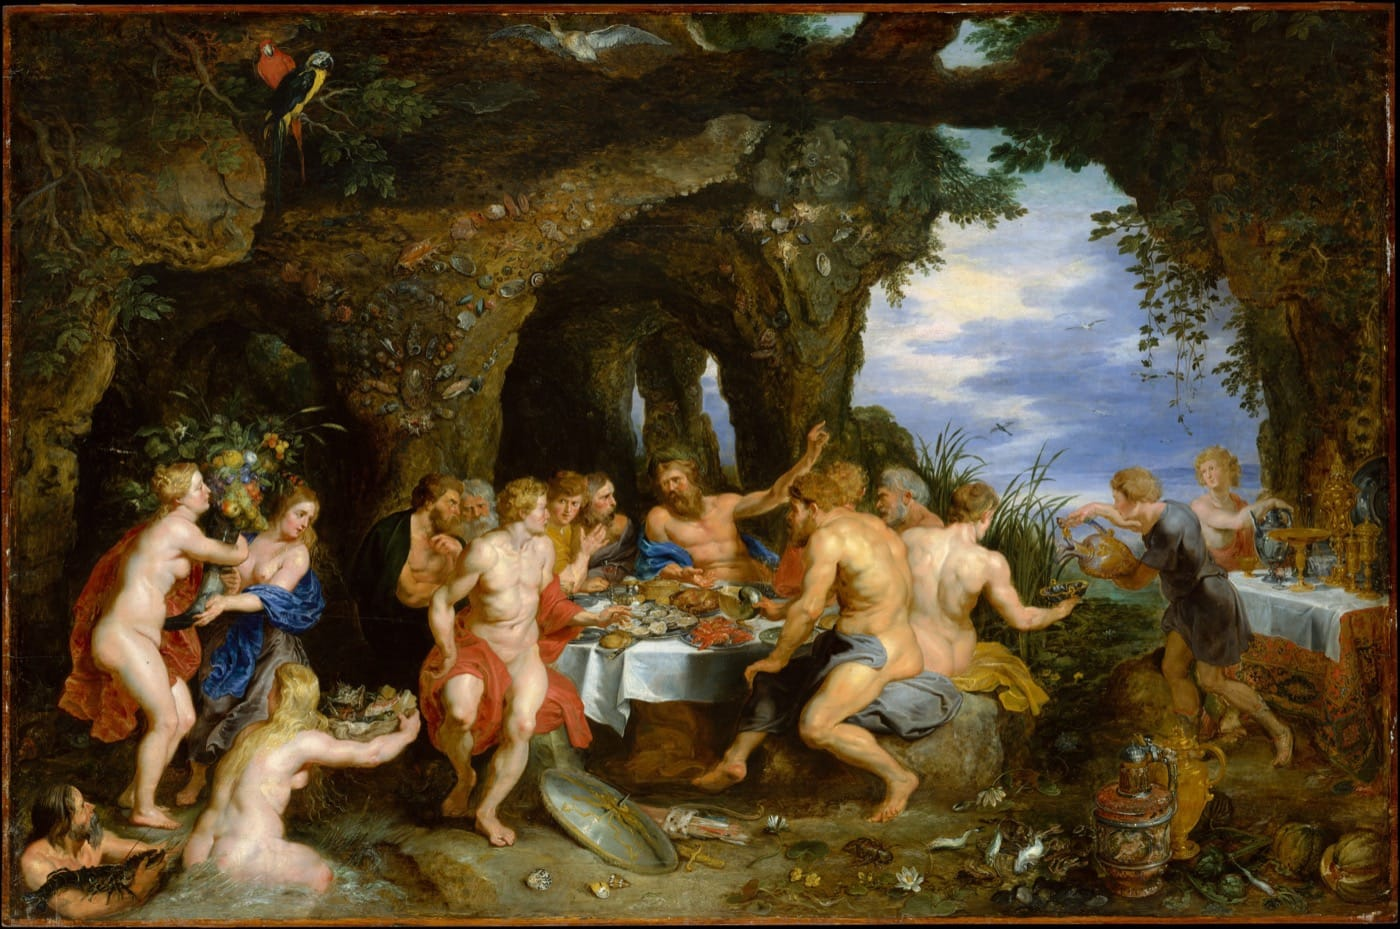 Peter Paul Reubens & Jan Brueghel the Elder